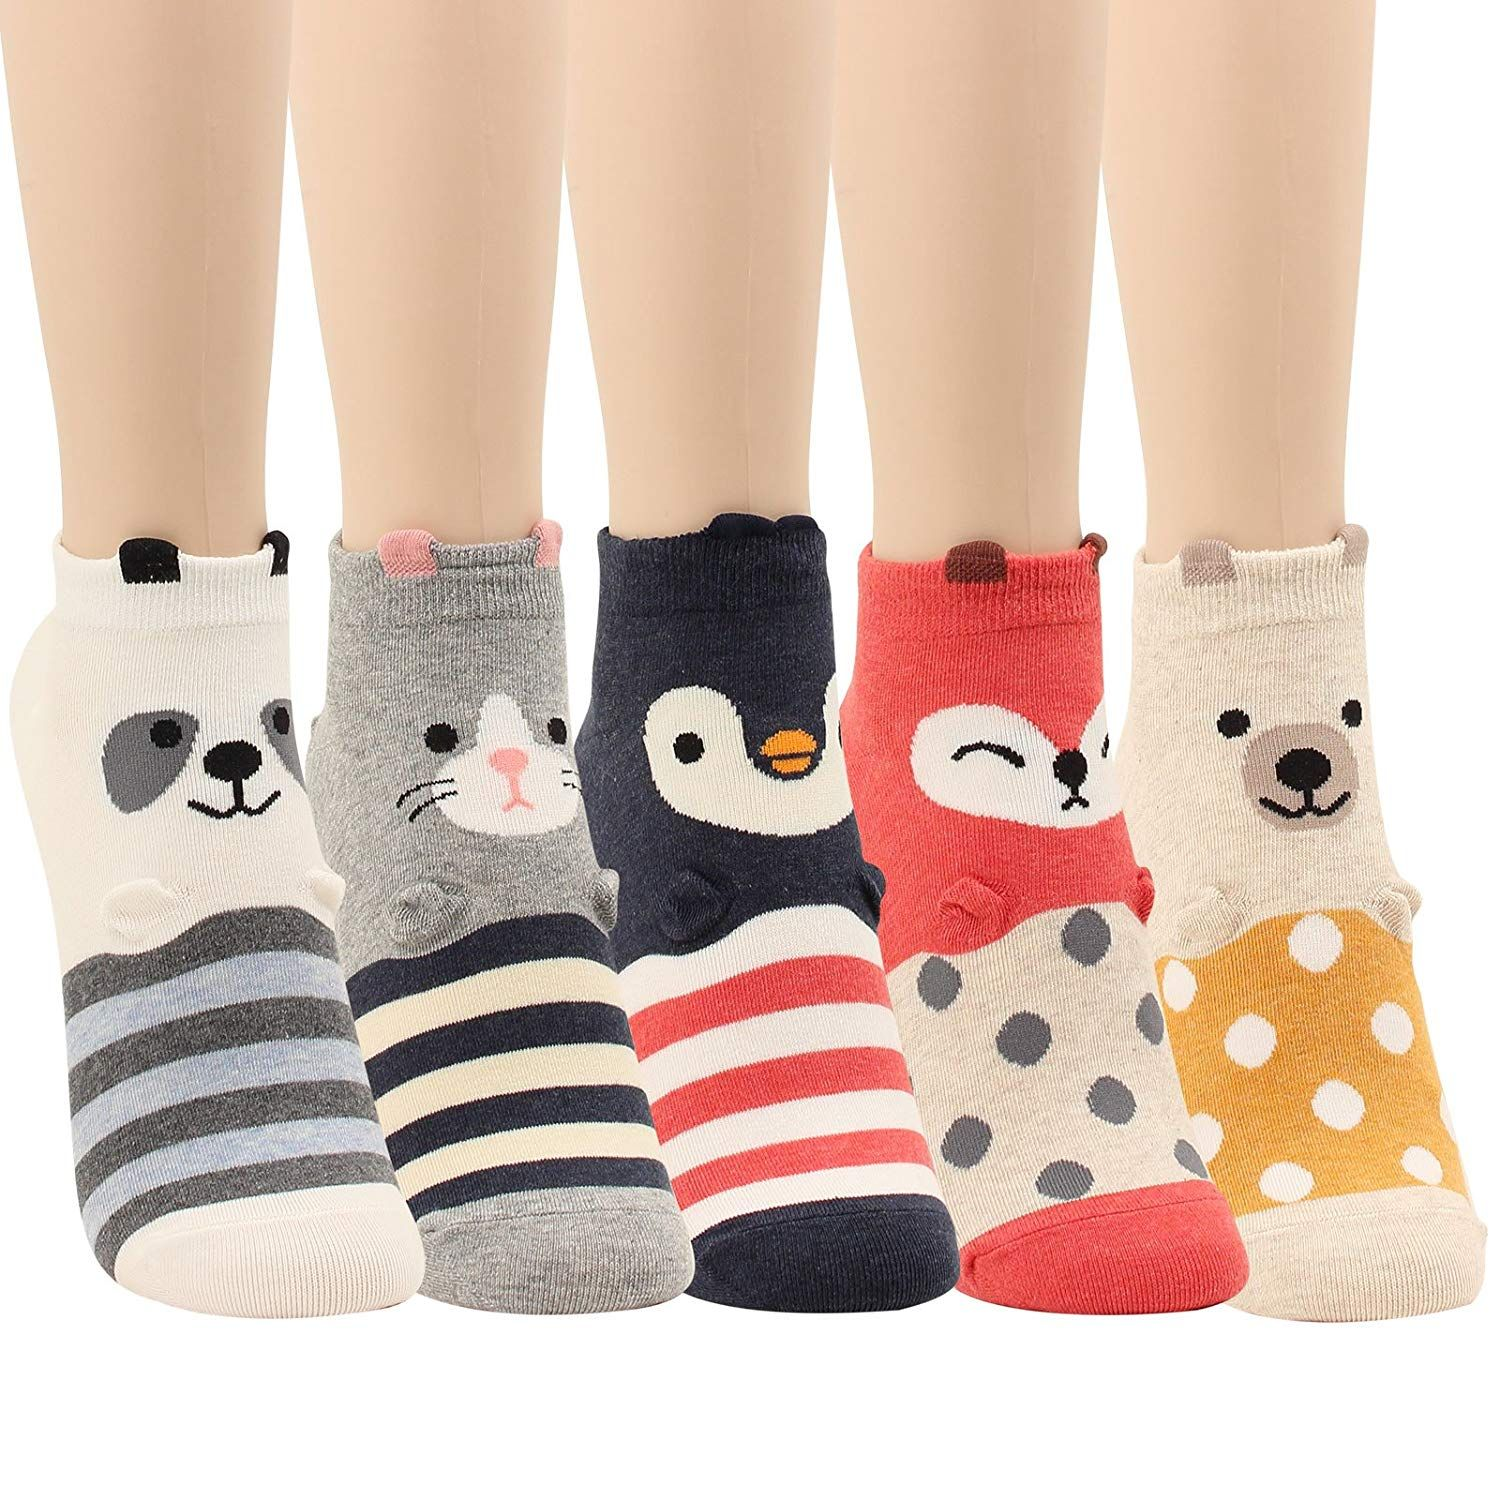 b117a037b WOWFOOT Animal Zoo Casual Cute Fun Cotton Print Ankle Socks Design (Smile  Animal - 5 pairs), One Size at Amazon Women's Clothing store: